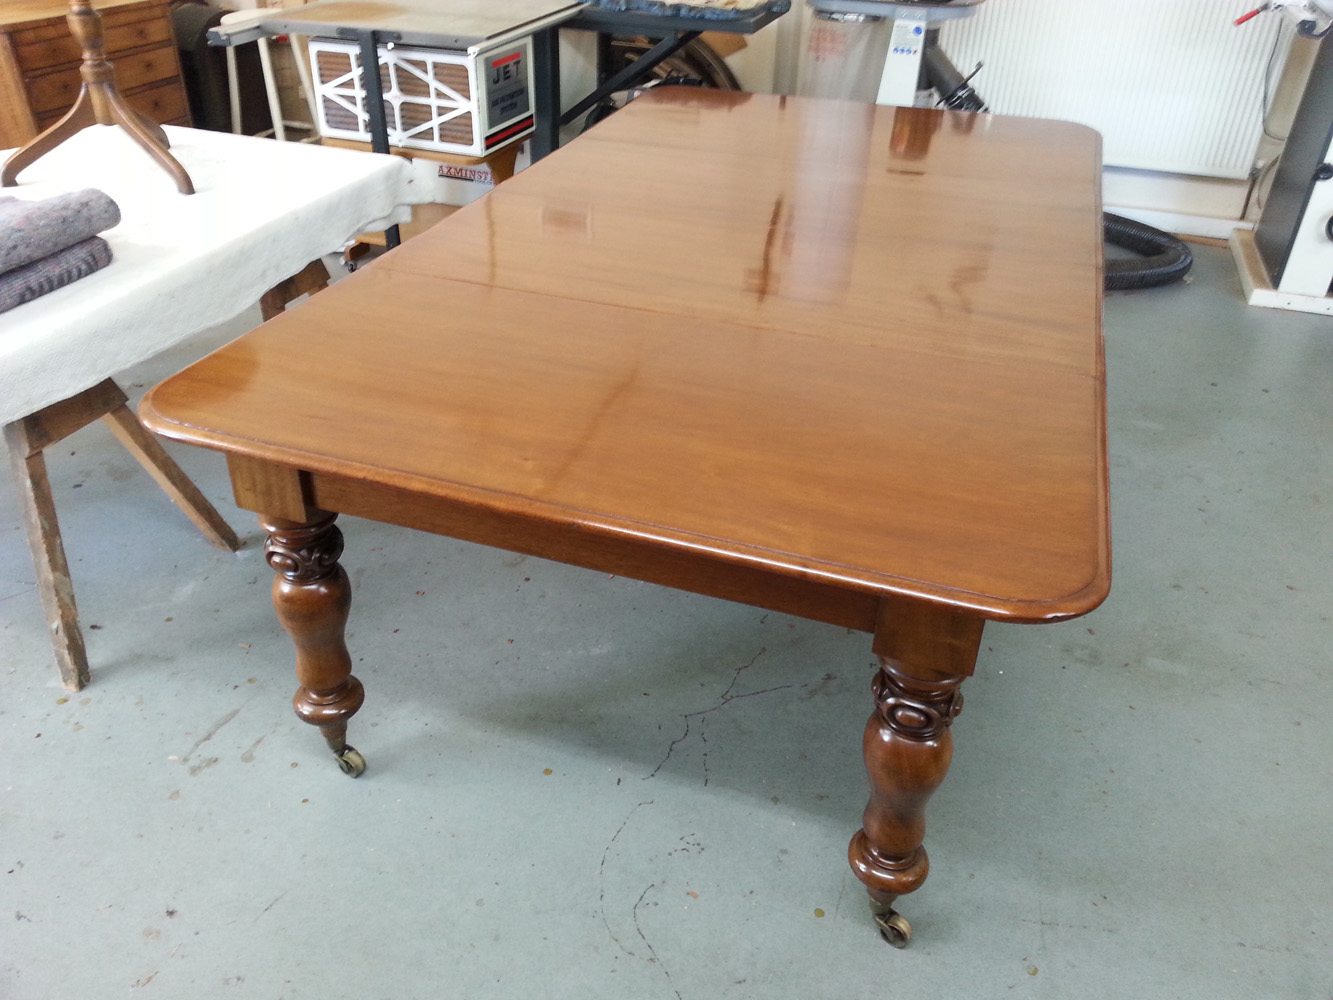 Re-finished dining table